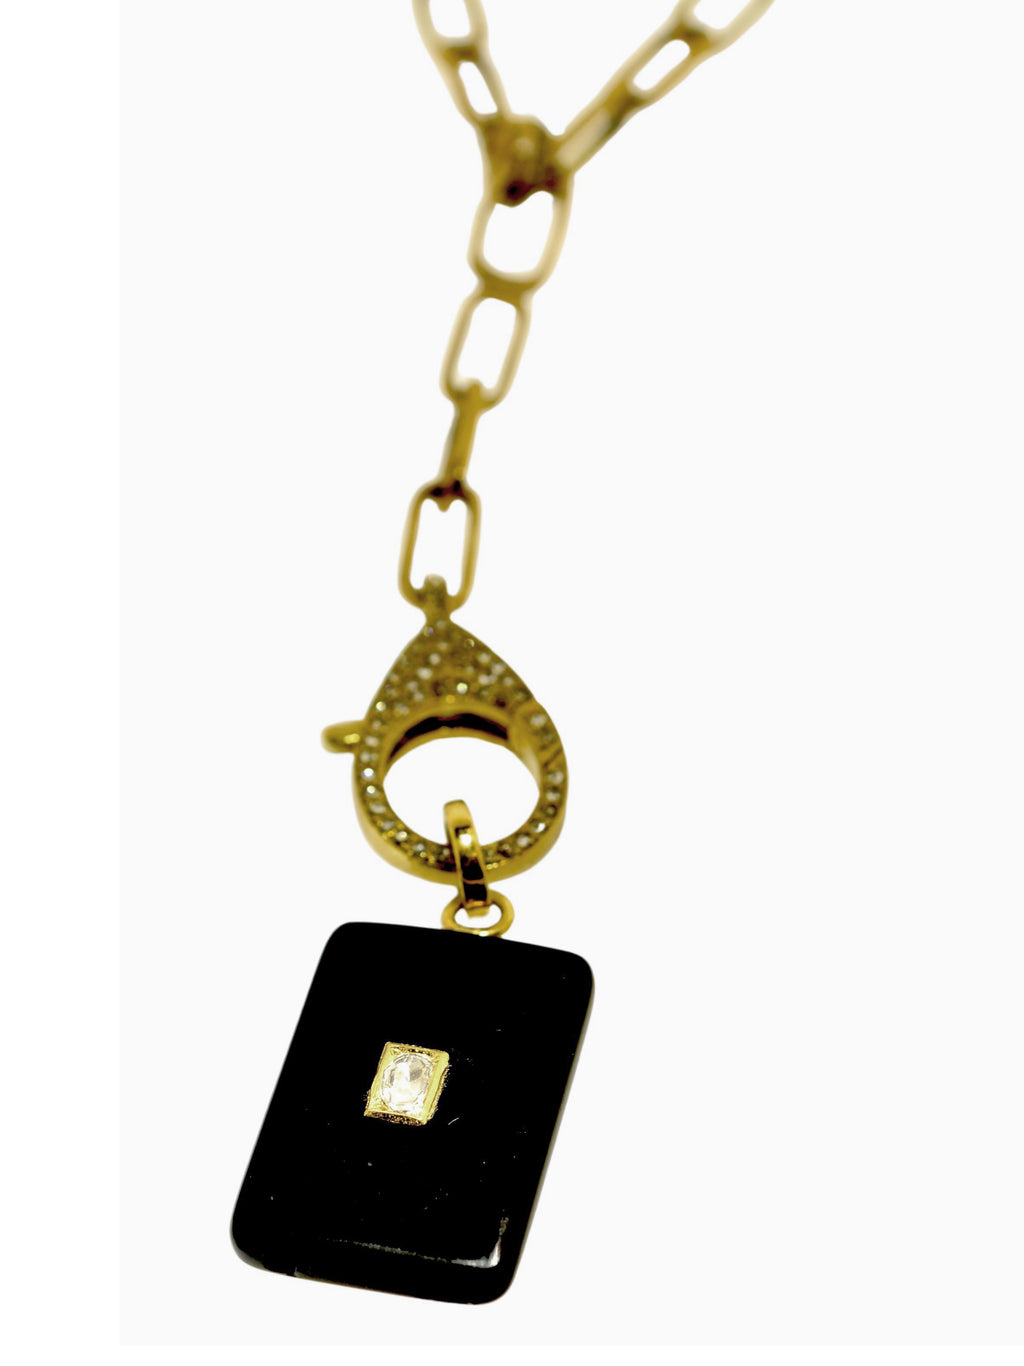 Onyx with Diamond inset in Brass